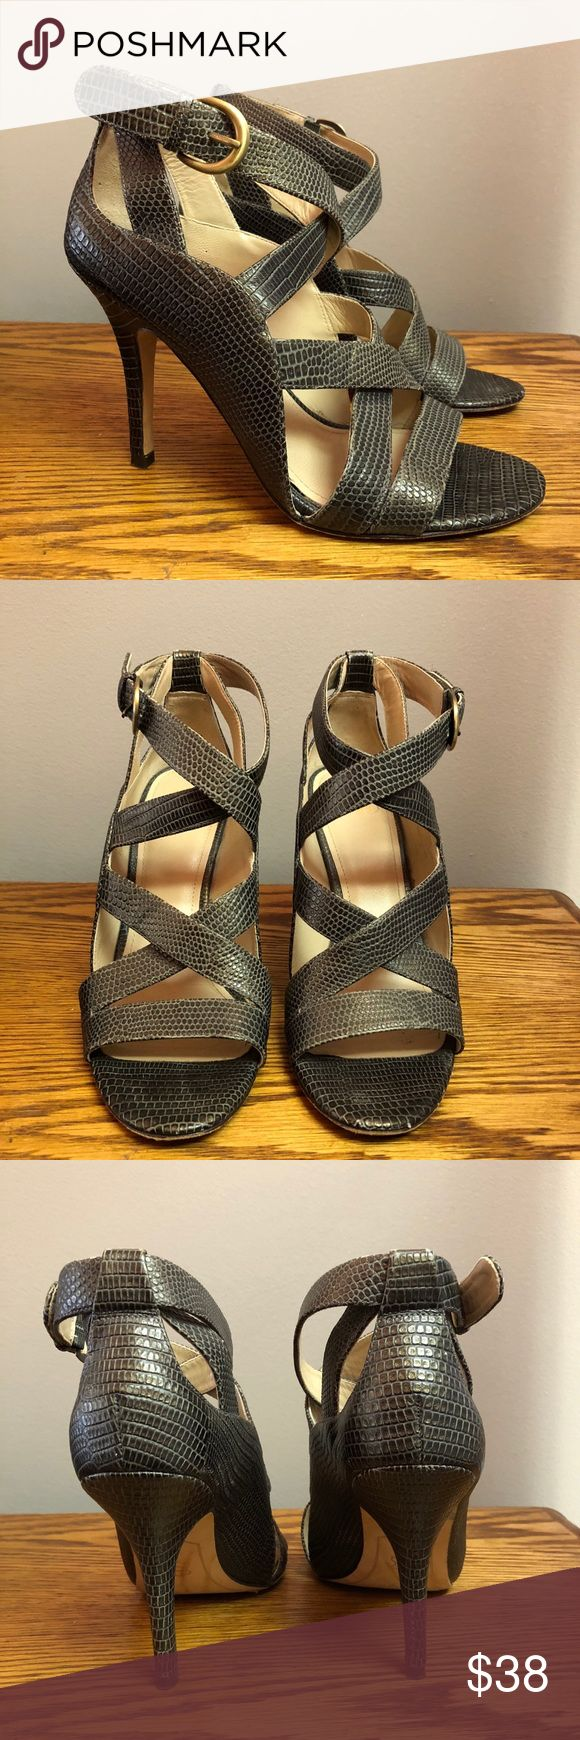 Joan & David Dk Green Snakeprint Strappy Heels Joan & David dark green leather strappy heels. Wear on soles, otherwise in perfect condition. Great heels dressed up or with a great pair of jeans. Joan & David Shoes Heels